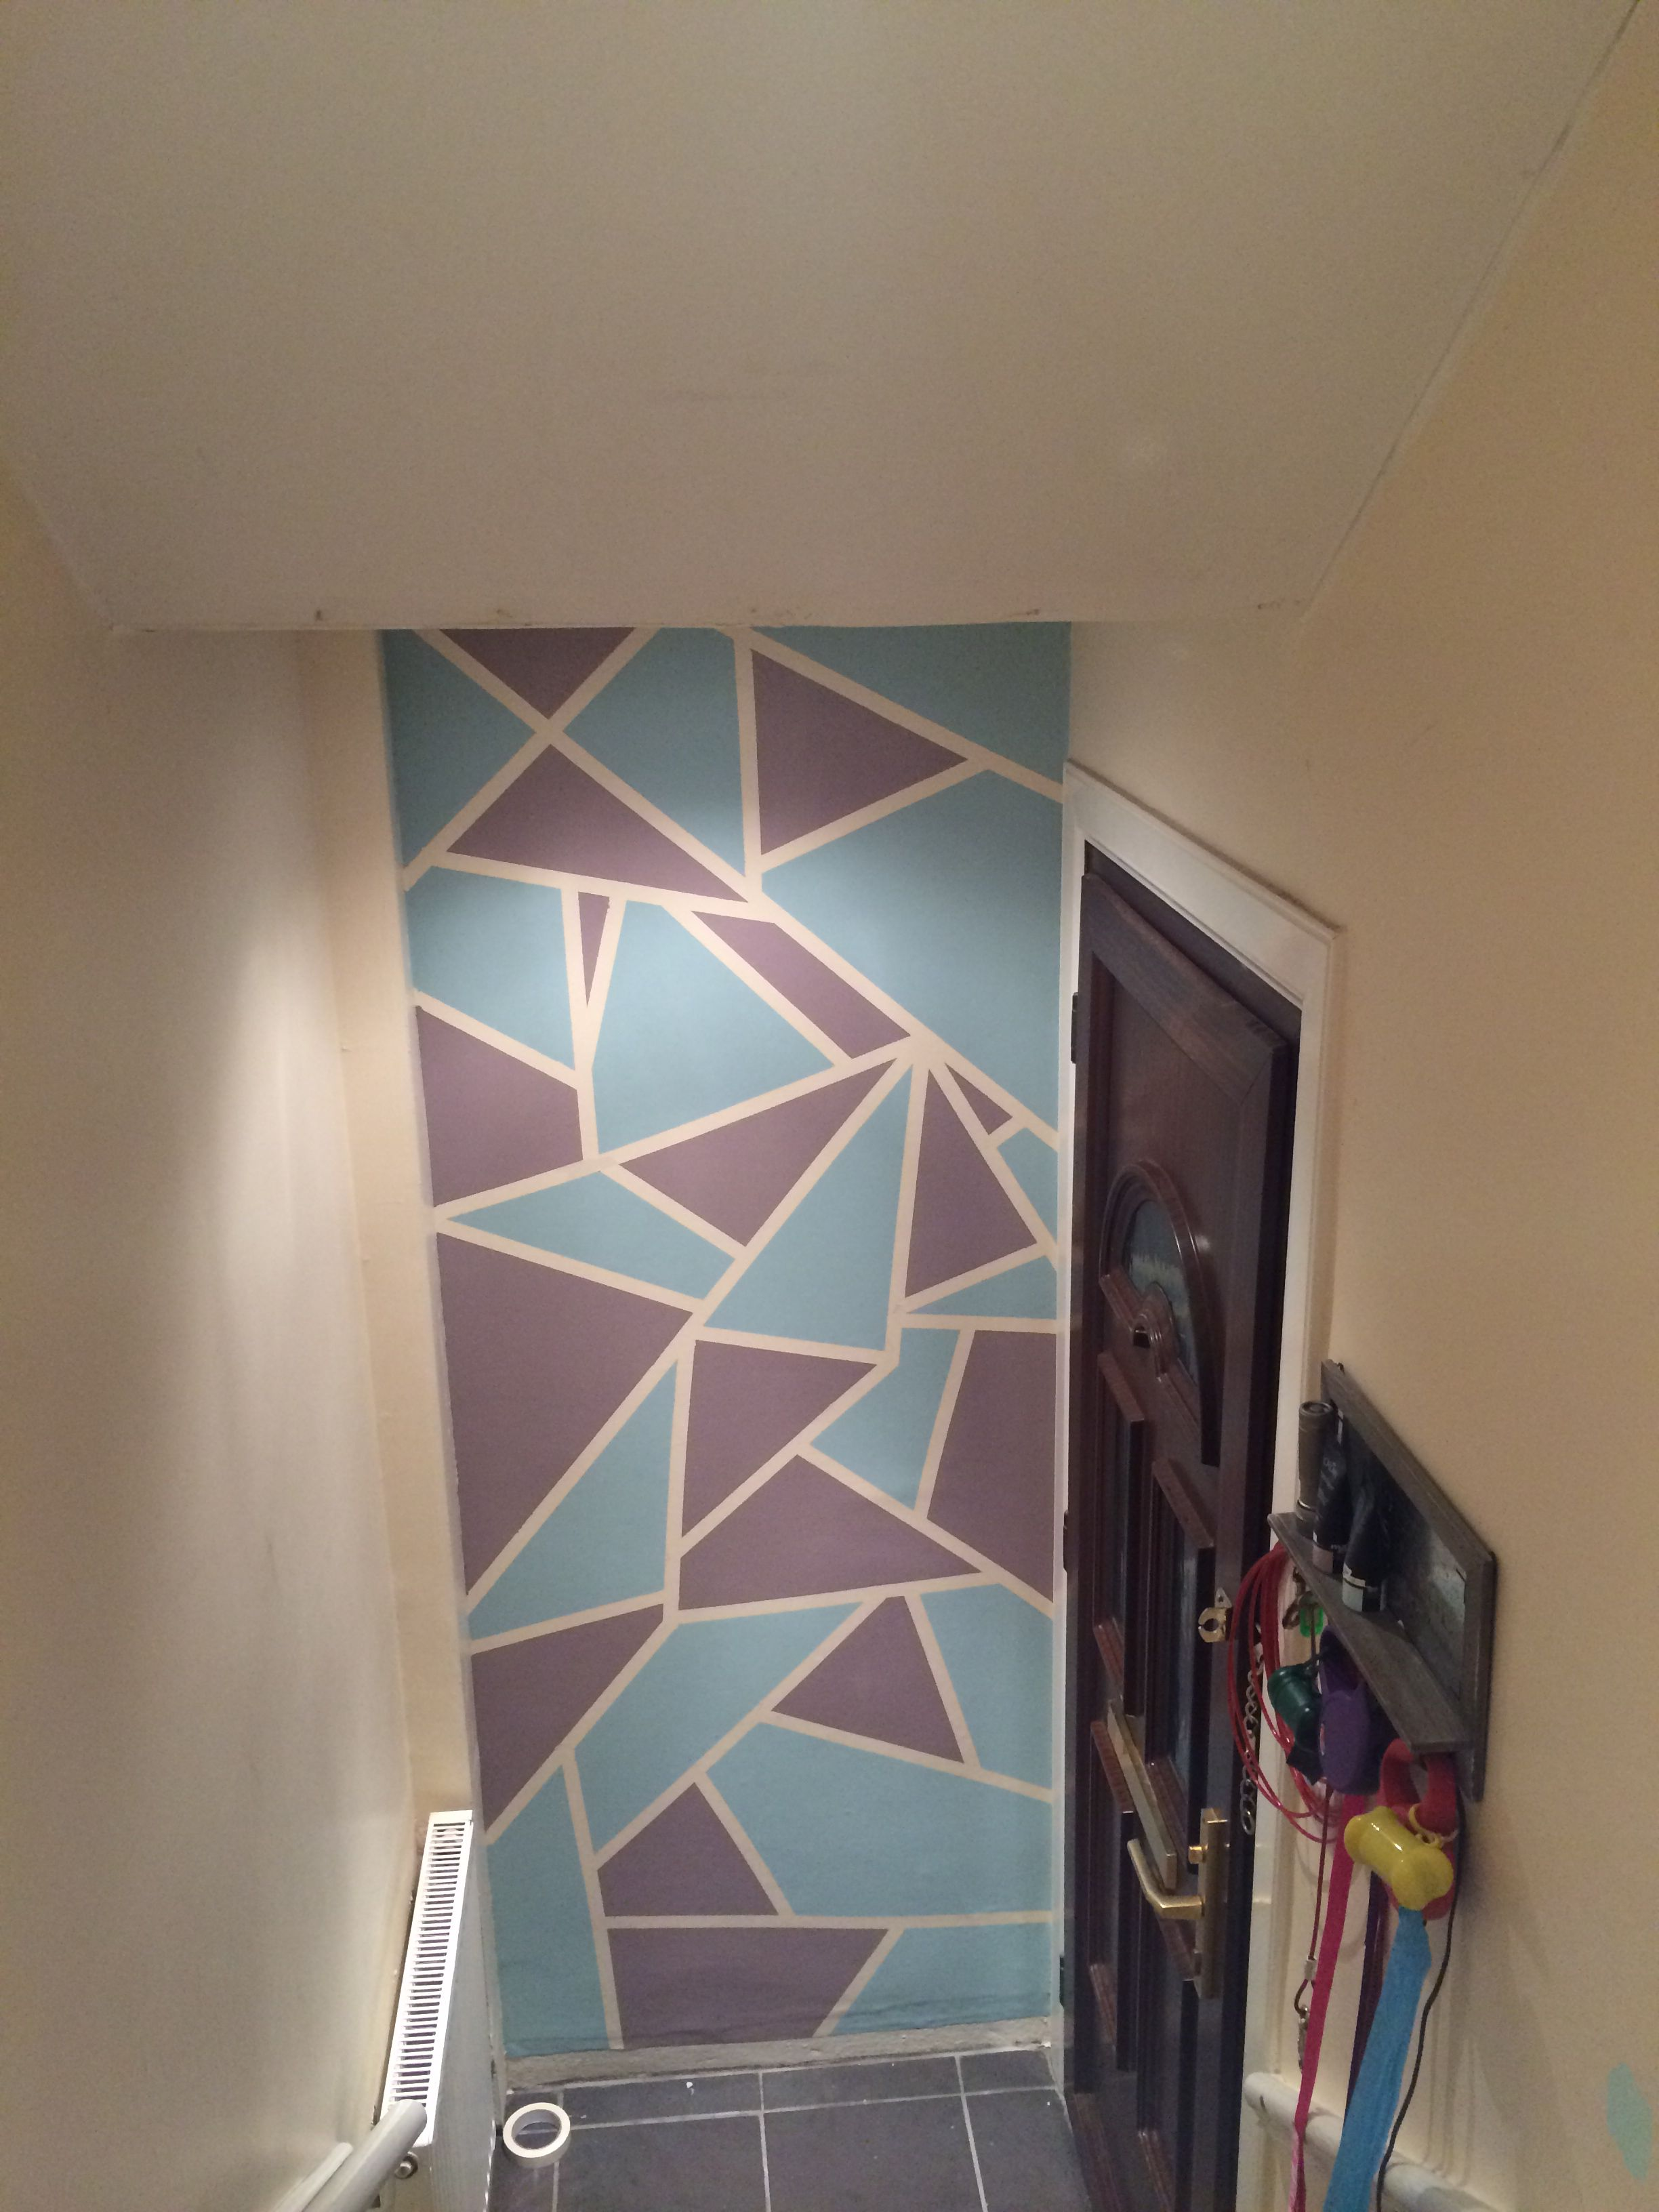 I Used Masking Tape To Section Off The Wall And Then Painted Each Section Love The Result Tape Painting Wall Painting Masking Tape